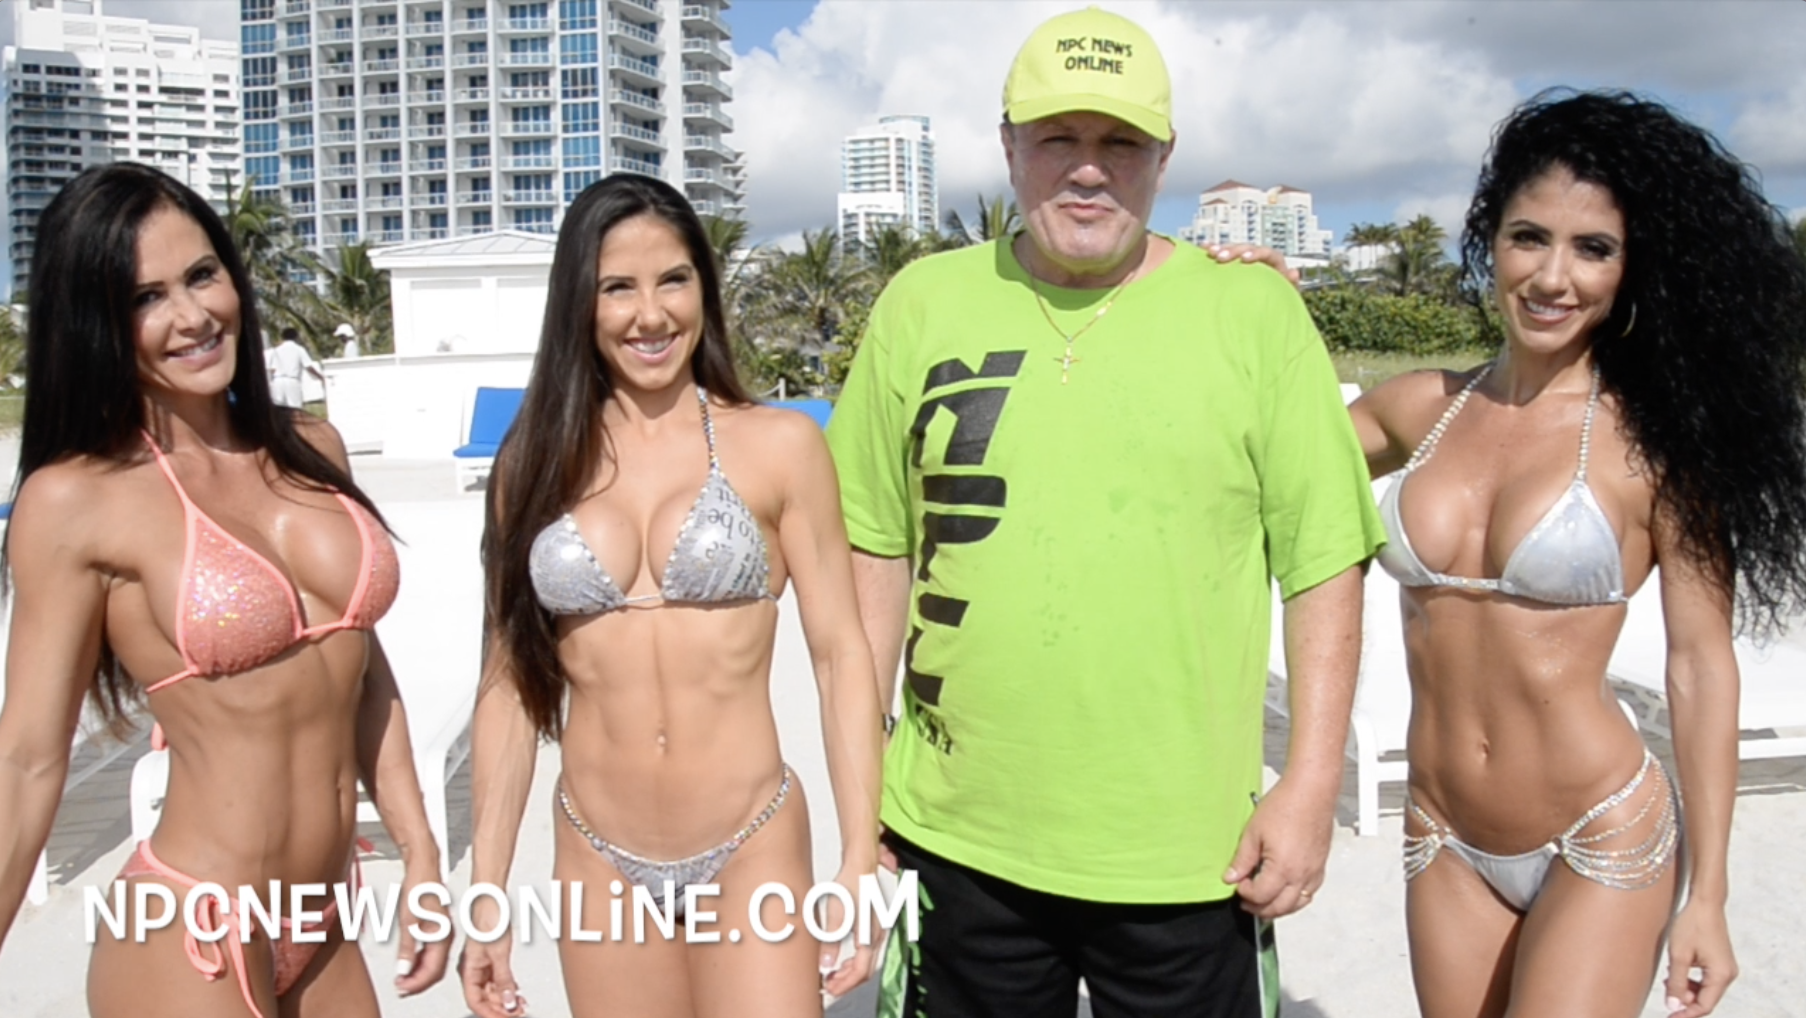 J.M. Manion South Beach Miami Shoot Video With IFBB Bikini Pro's Michelle Sylvia, Catherine Radulic and Angelica Teixeira.